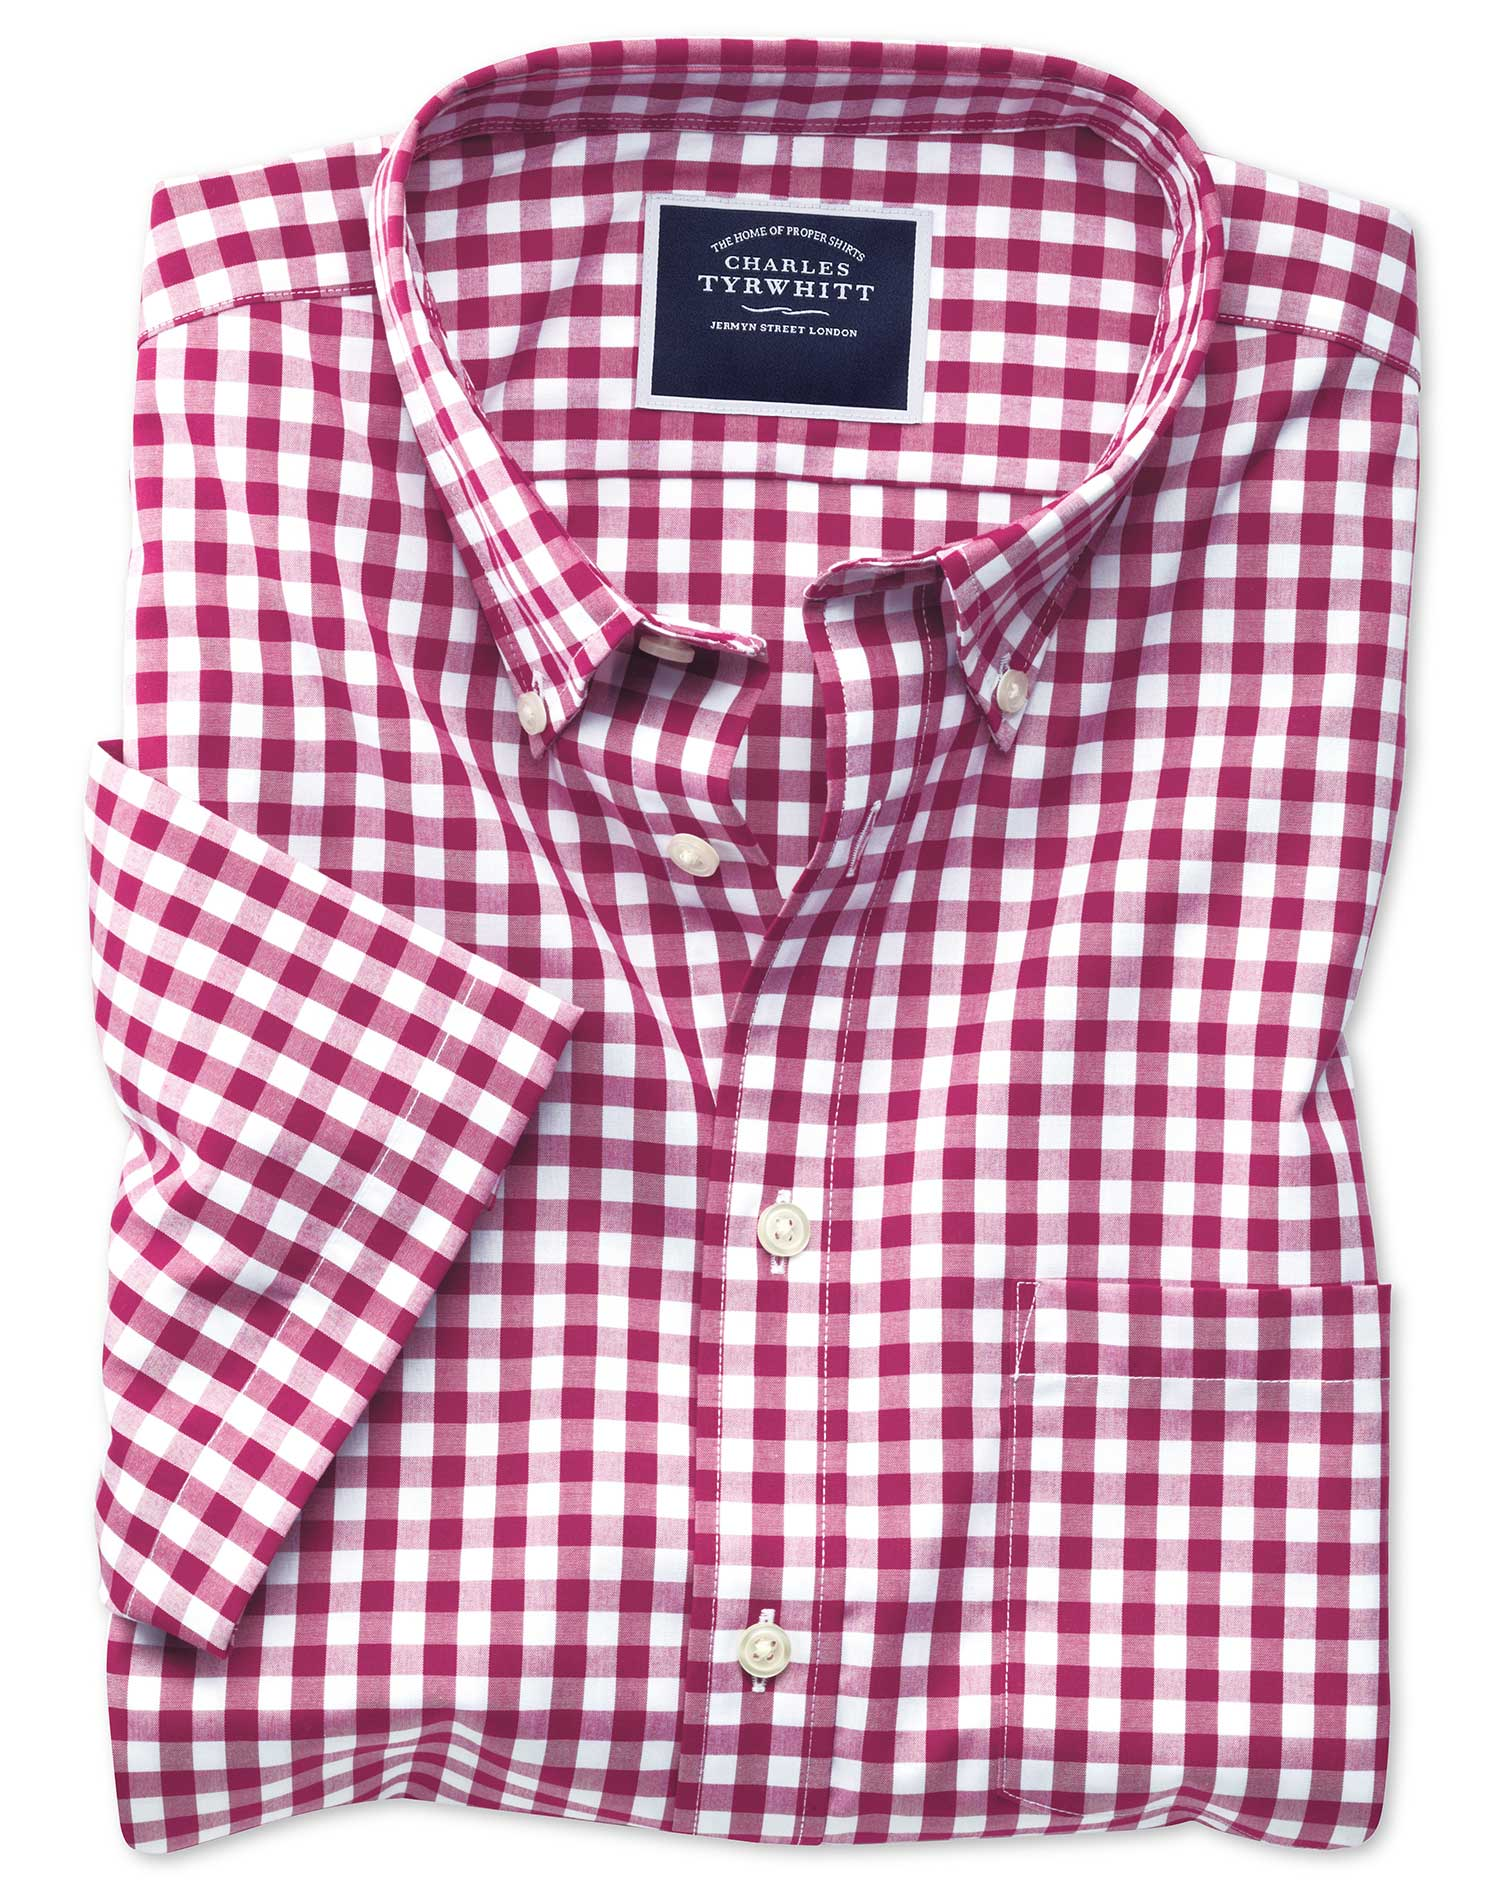 Classic Fit Button-Down Non-Iron Poplin Short Sleeve Red Gingham Cotton Shirt Single Cuff Size XXL b